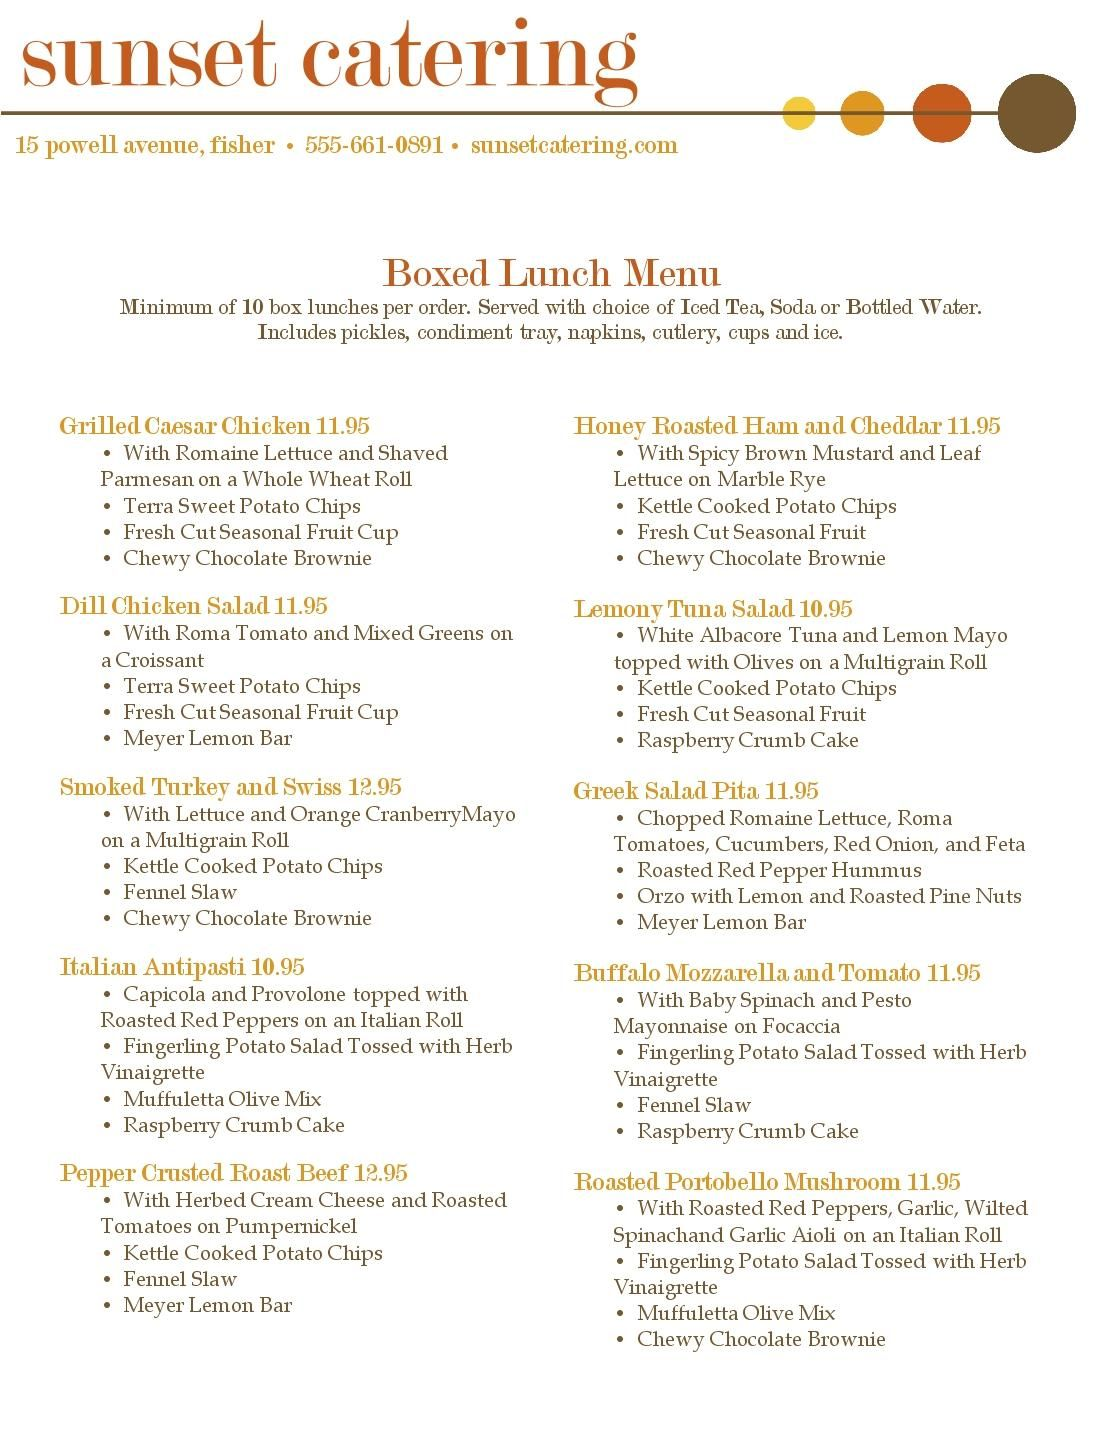 picture regarding Panera Printable Catering Menu titled Box Lunch Menu Template Menu for Box Lunch Catering